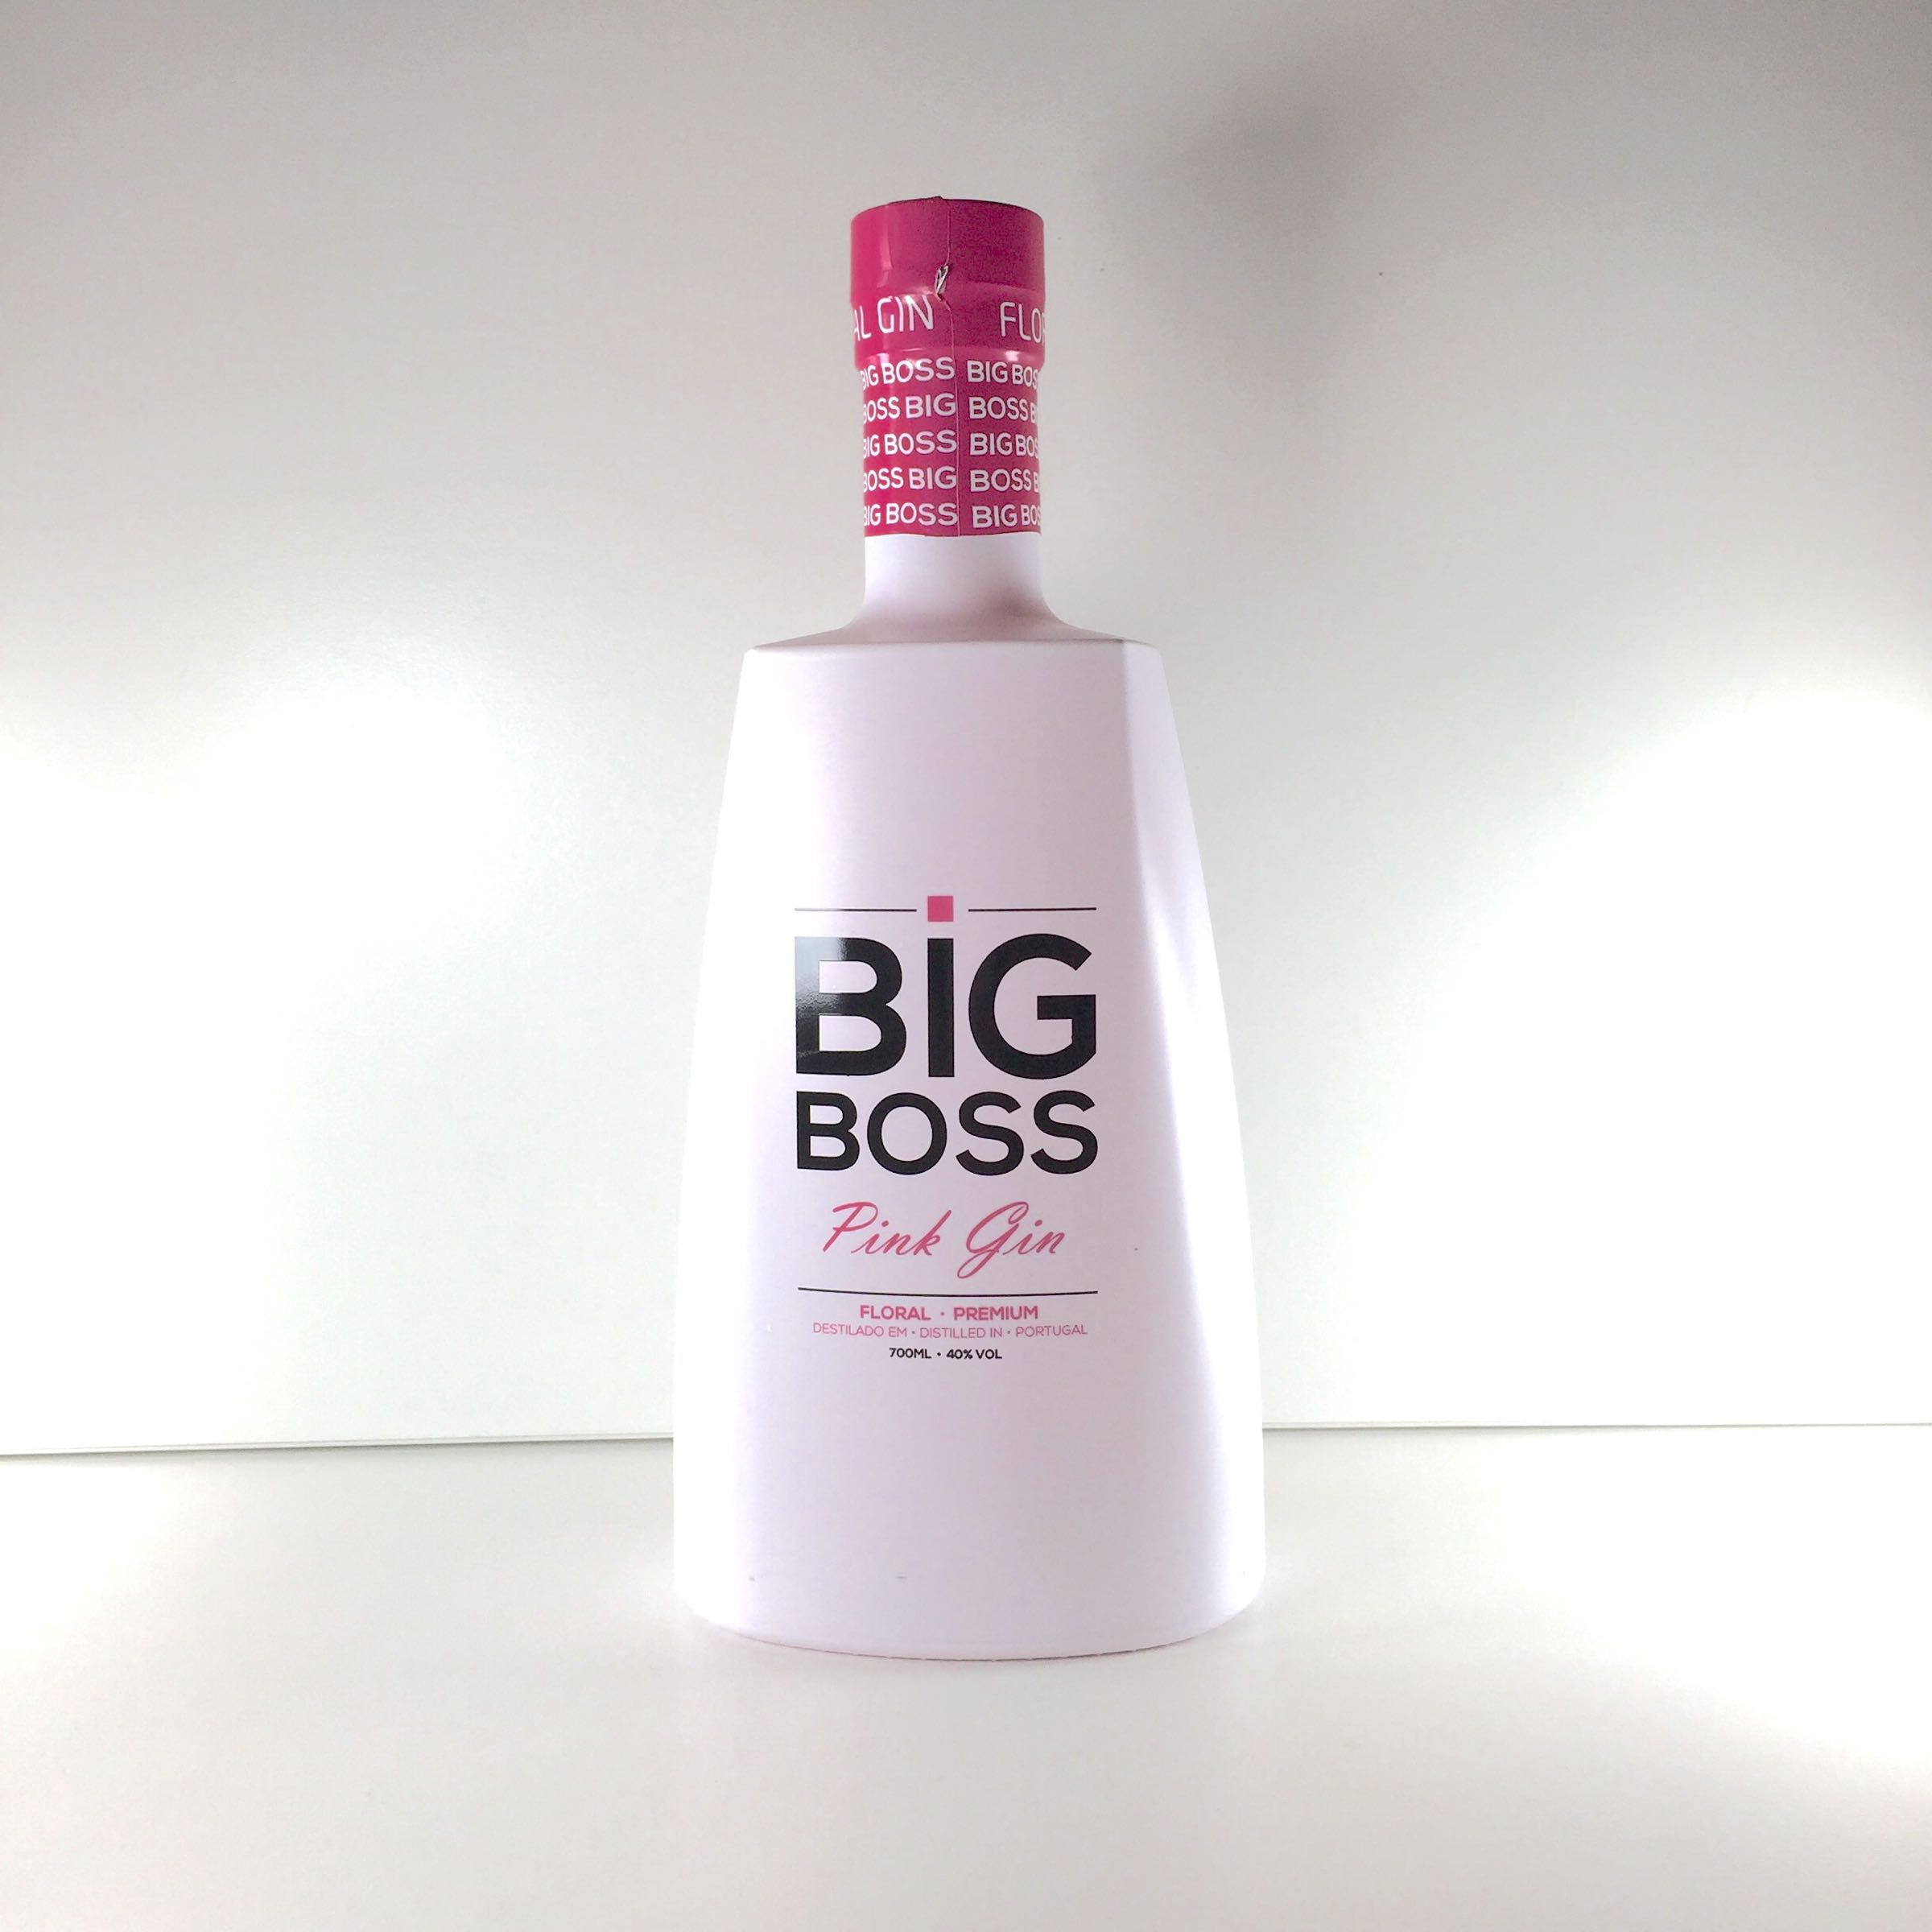 Big Boss 'Pink' GinWas £40 - Now £38